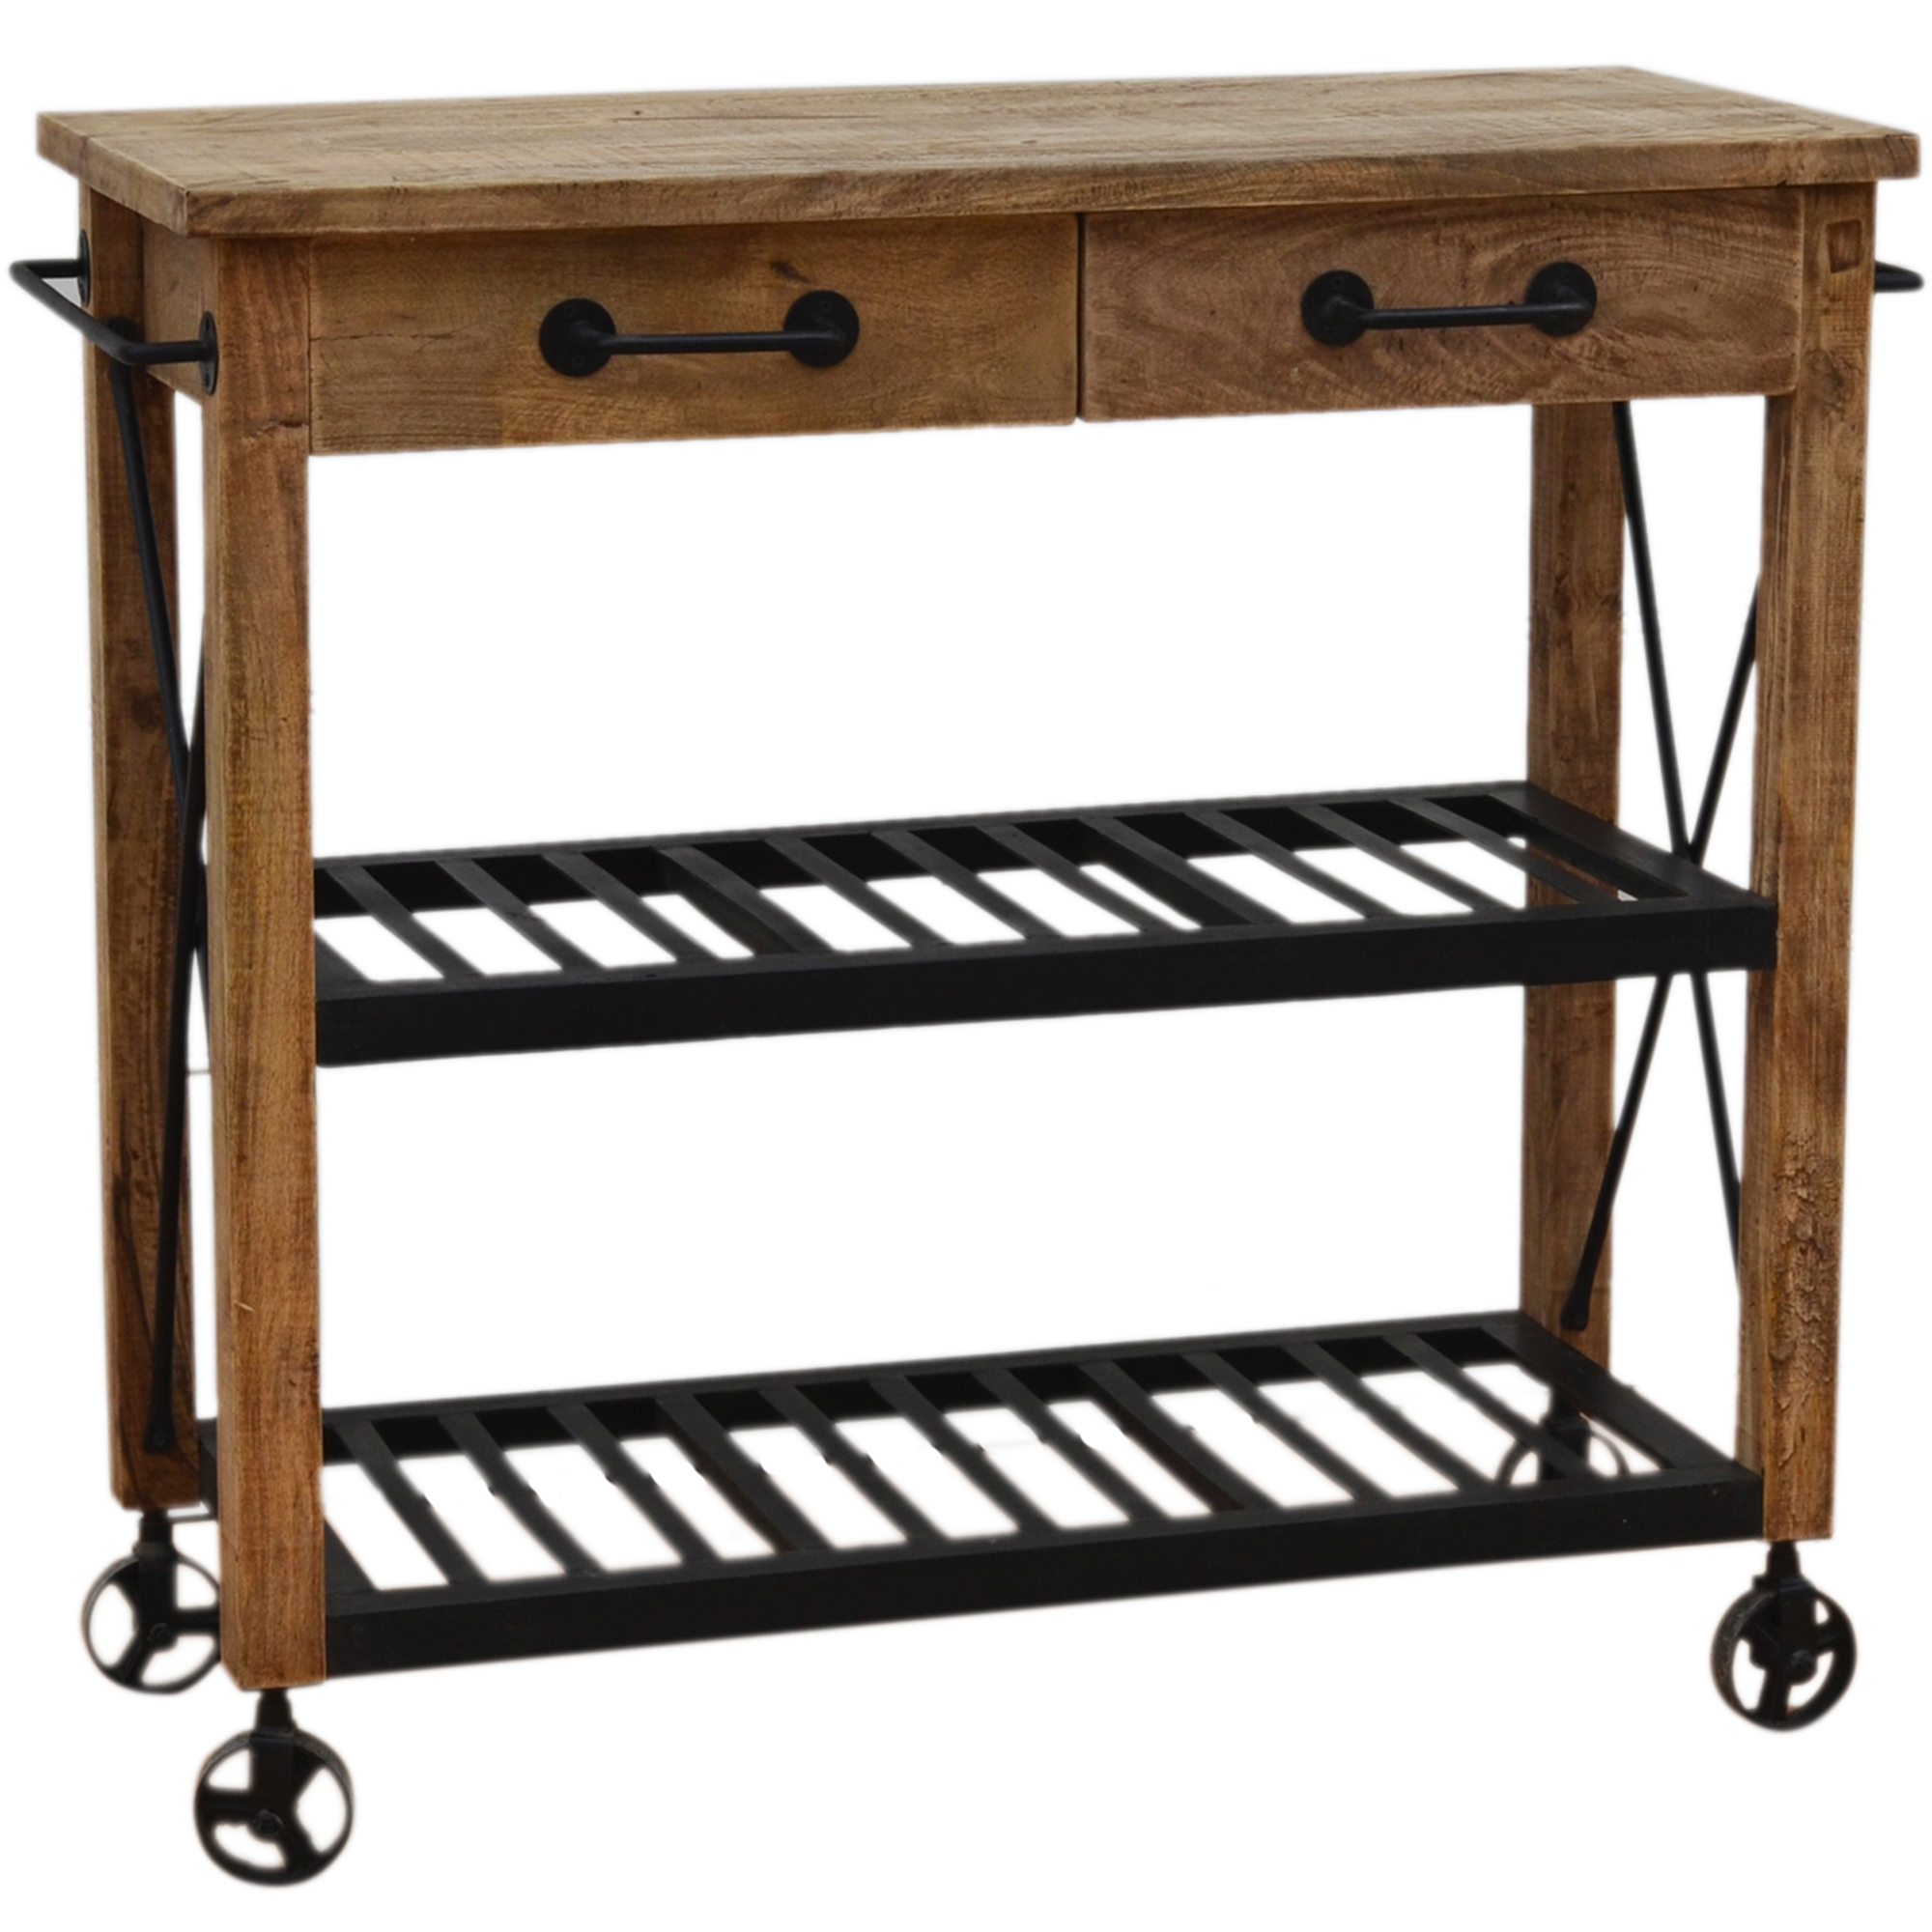 Sku phib2389 rustic kitchen trolley is also sometimes listed under the following manufacturer numbers m5441